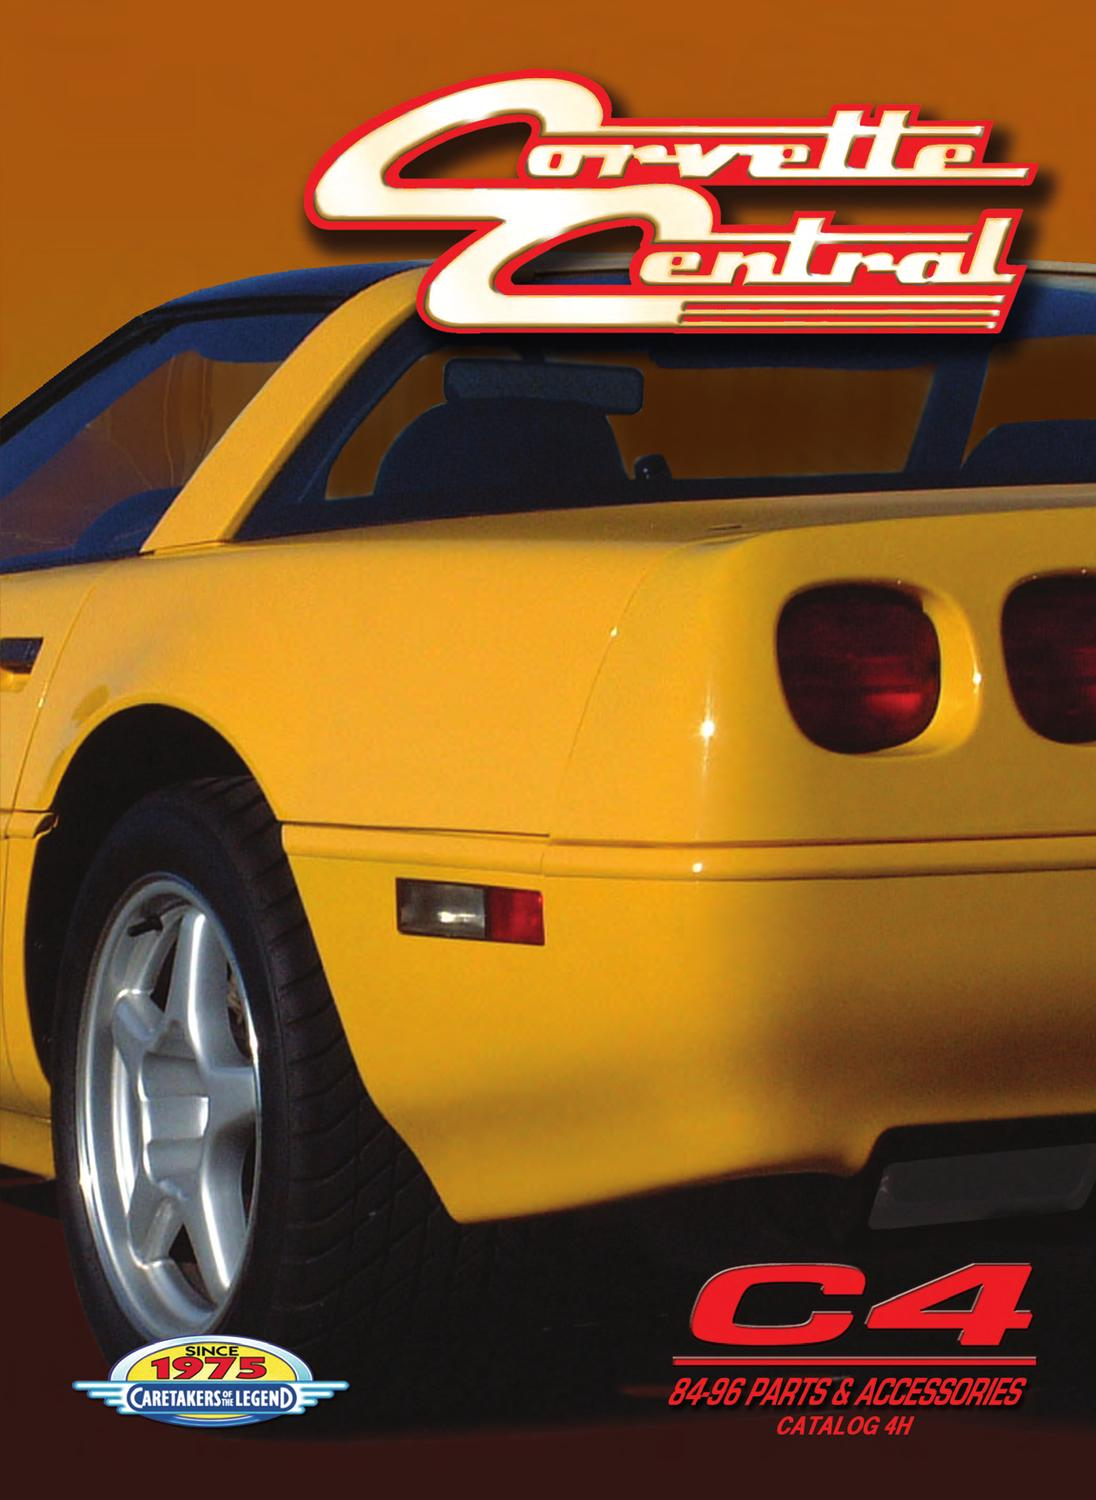 hight resolution of corvette central c4 84 96 corvette parts catalog by corvette central issuu